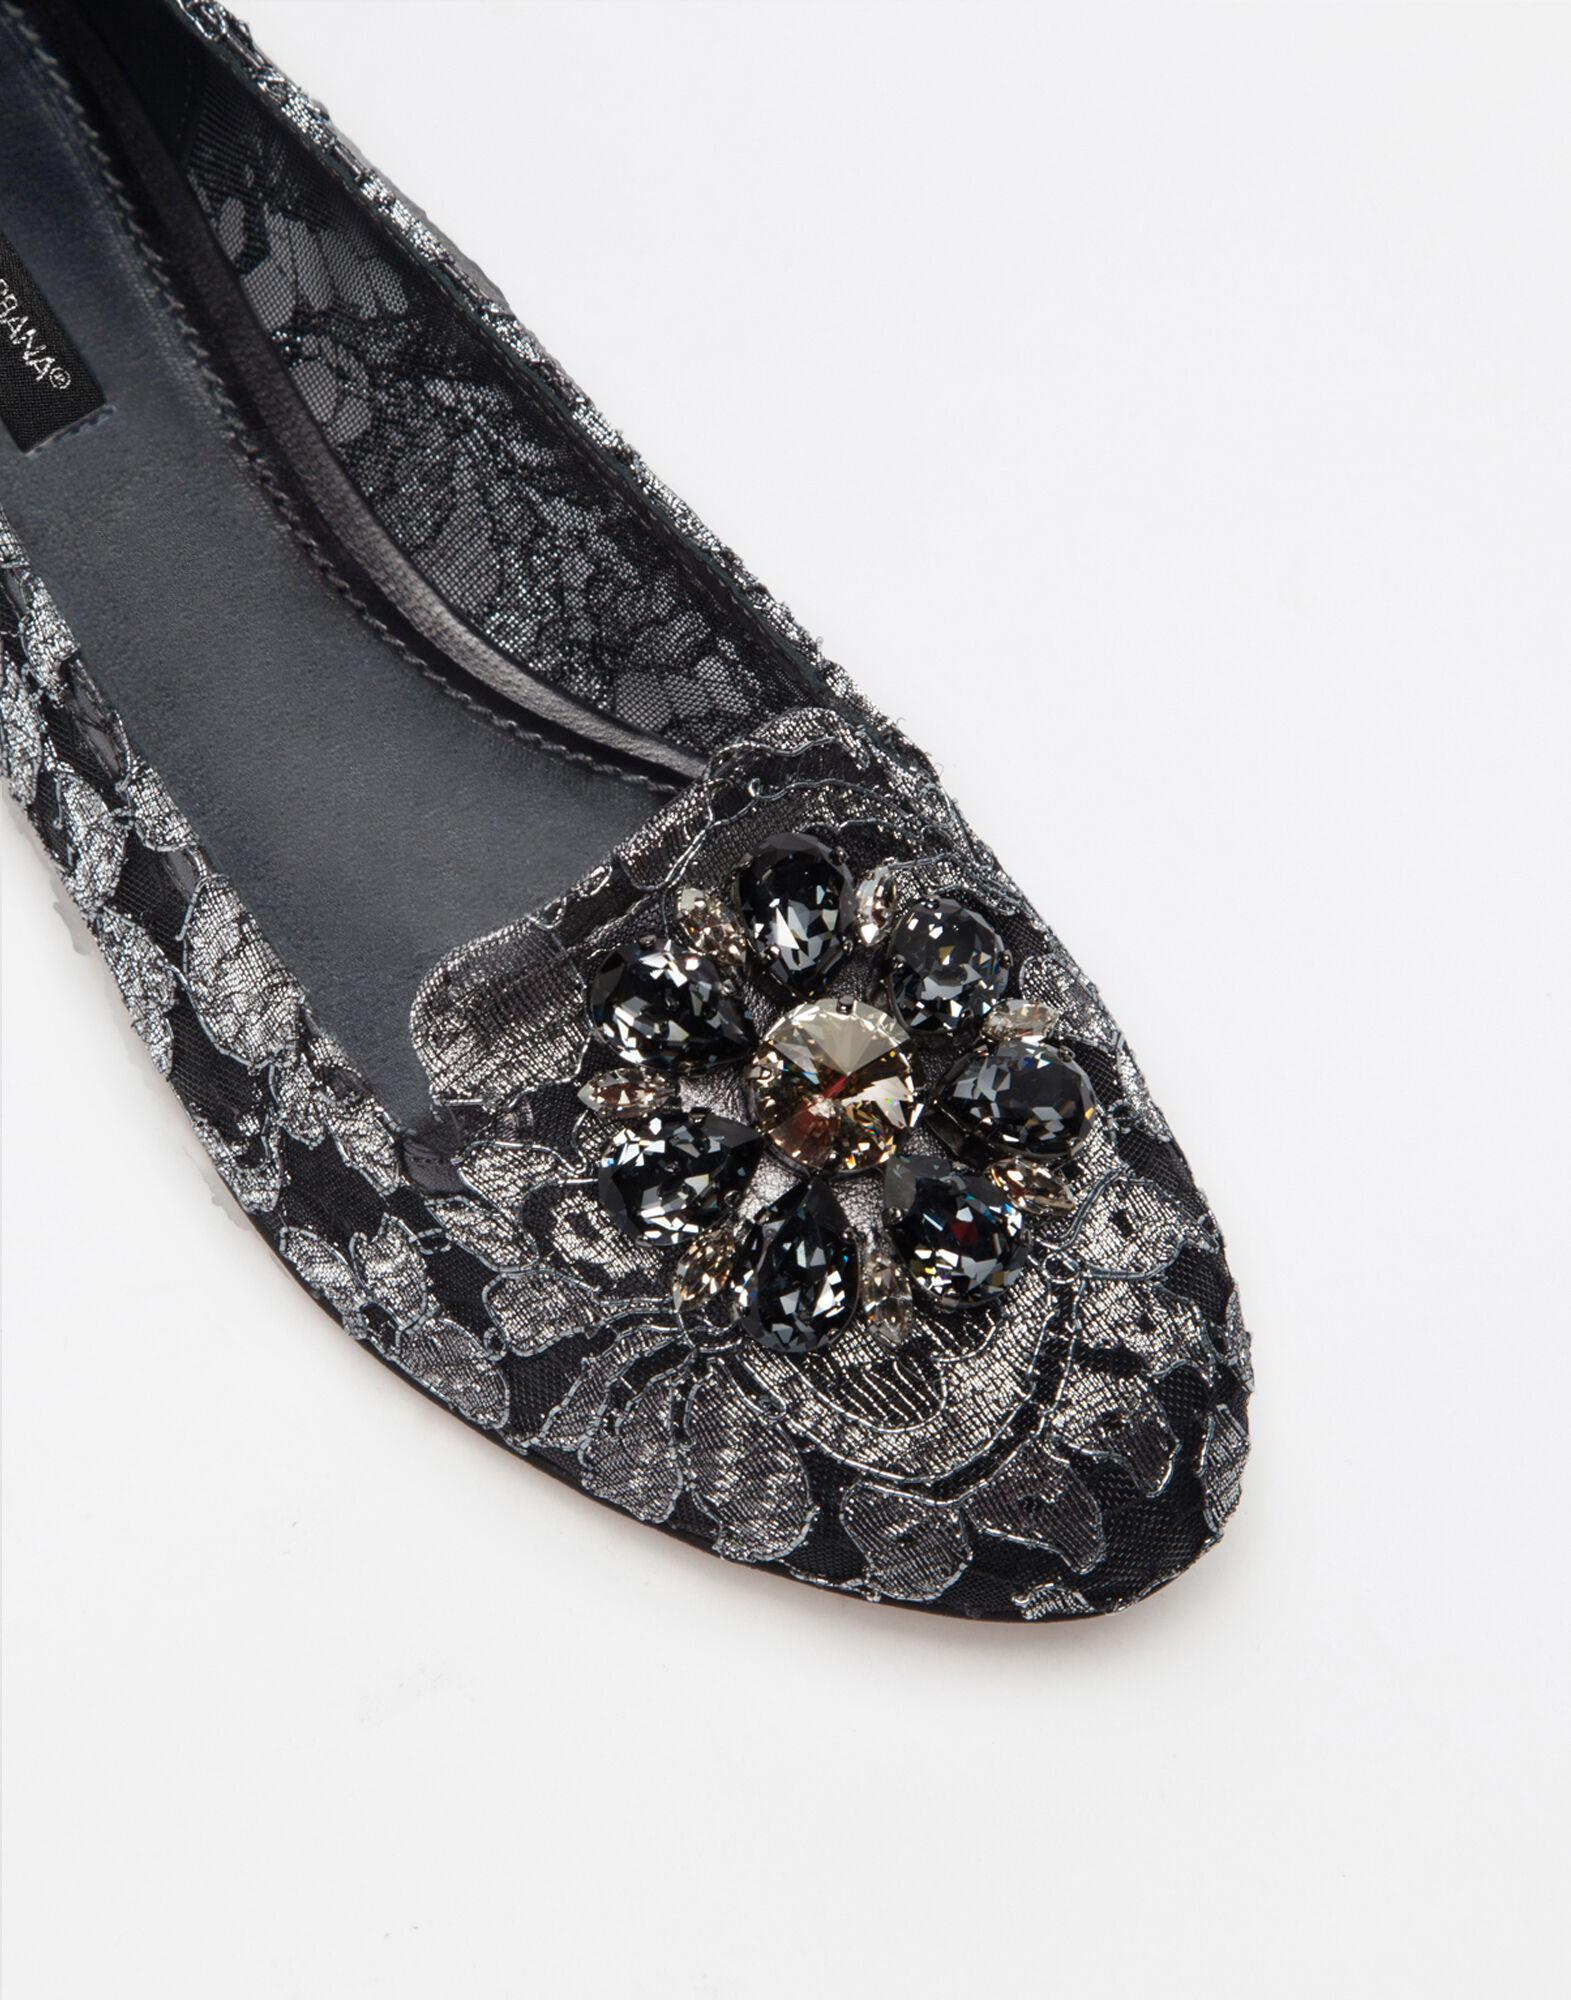 Slipper in Taormina lurex lace with crystals 3